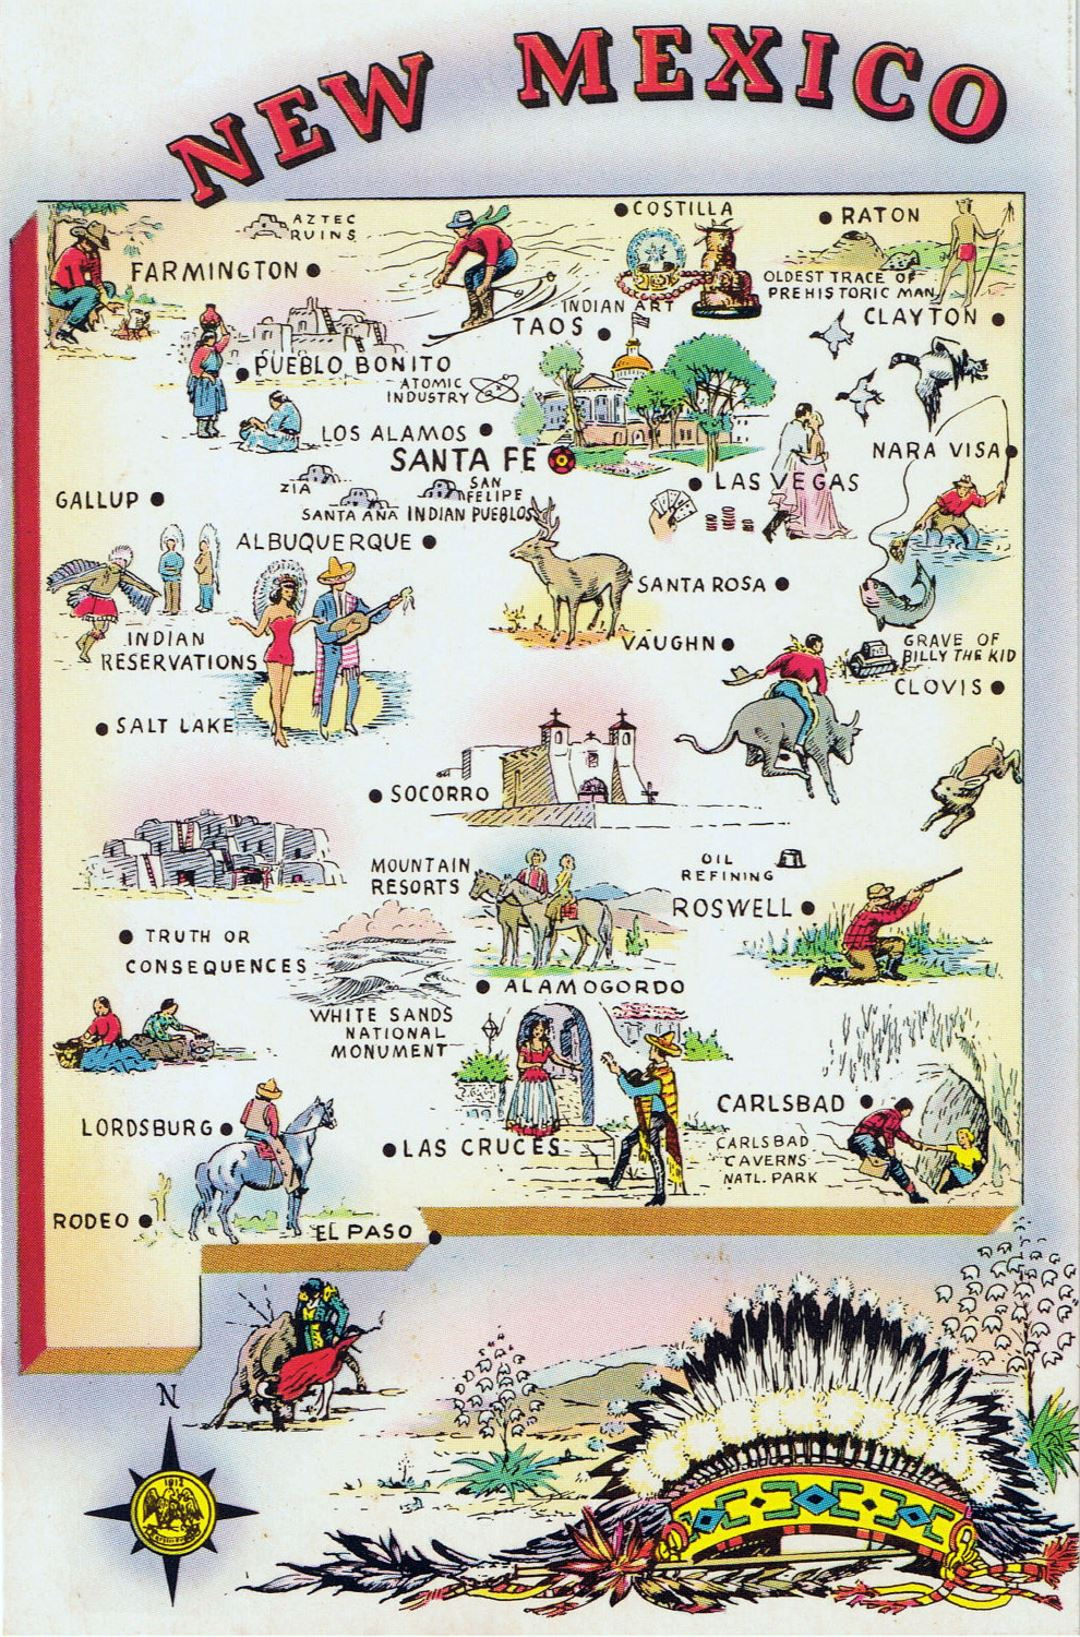 Detailed Tourist Illustrated Map Of New Mexico State